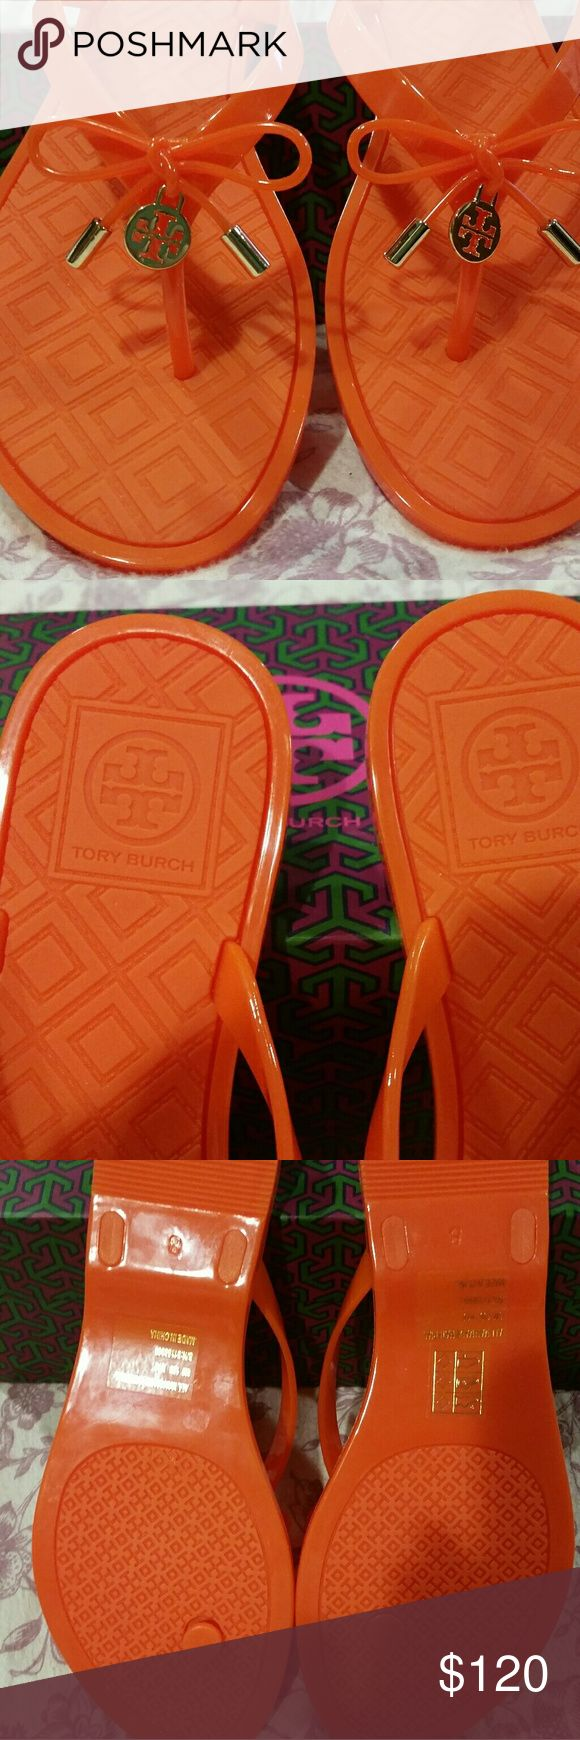 """Tory Burch Poppy Orange Flip Flop """" NWT """" Beautiful Orange Tory Burch Flip Flops... great for summer and spring , very eye catching with gold accents.. great price... Tory Burch Shoes Sandals"""